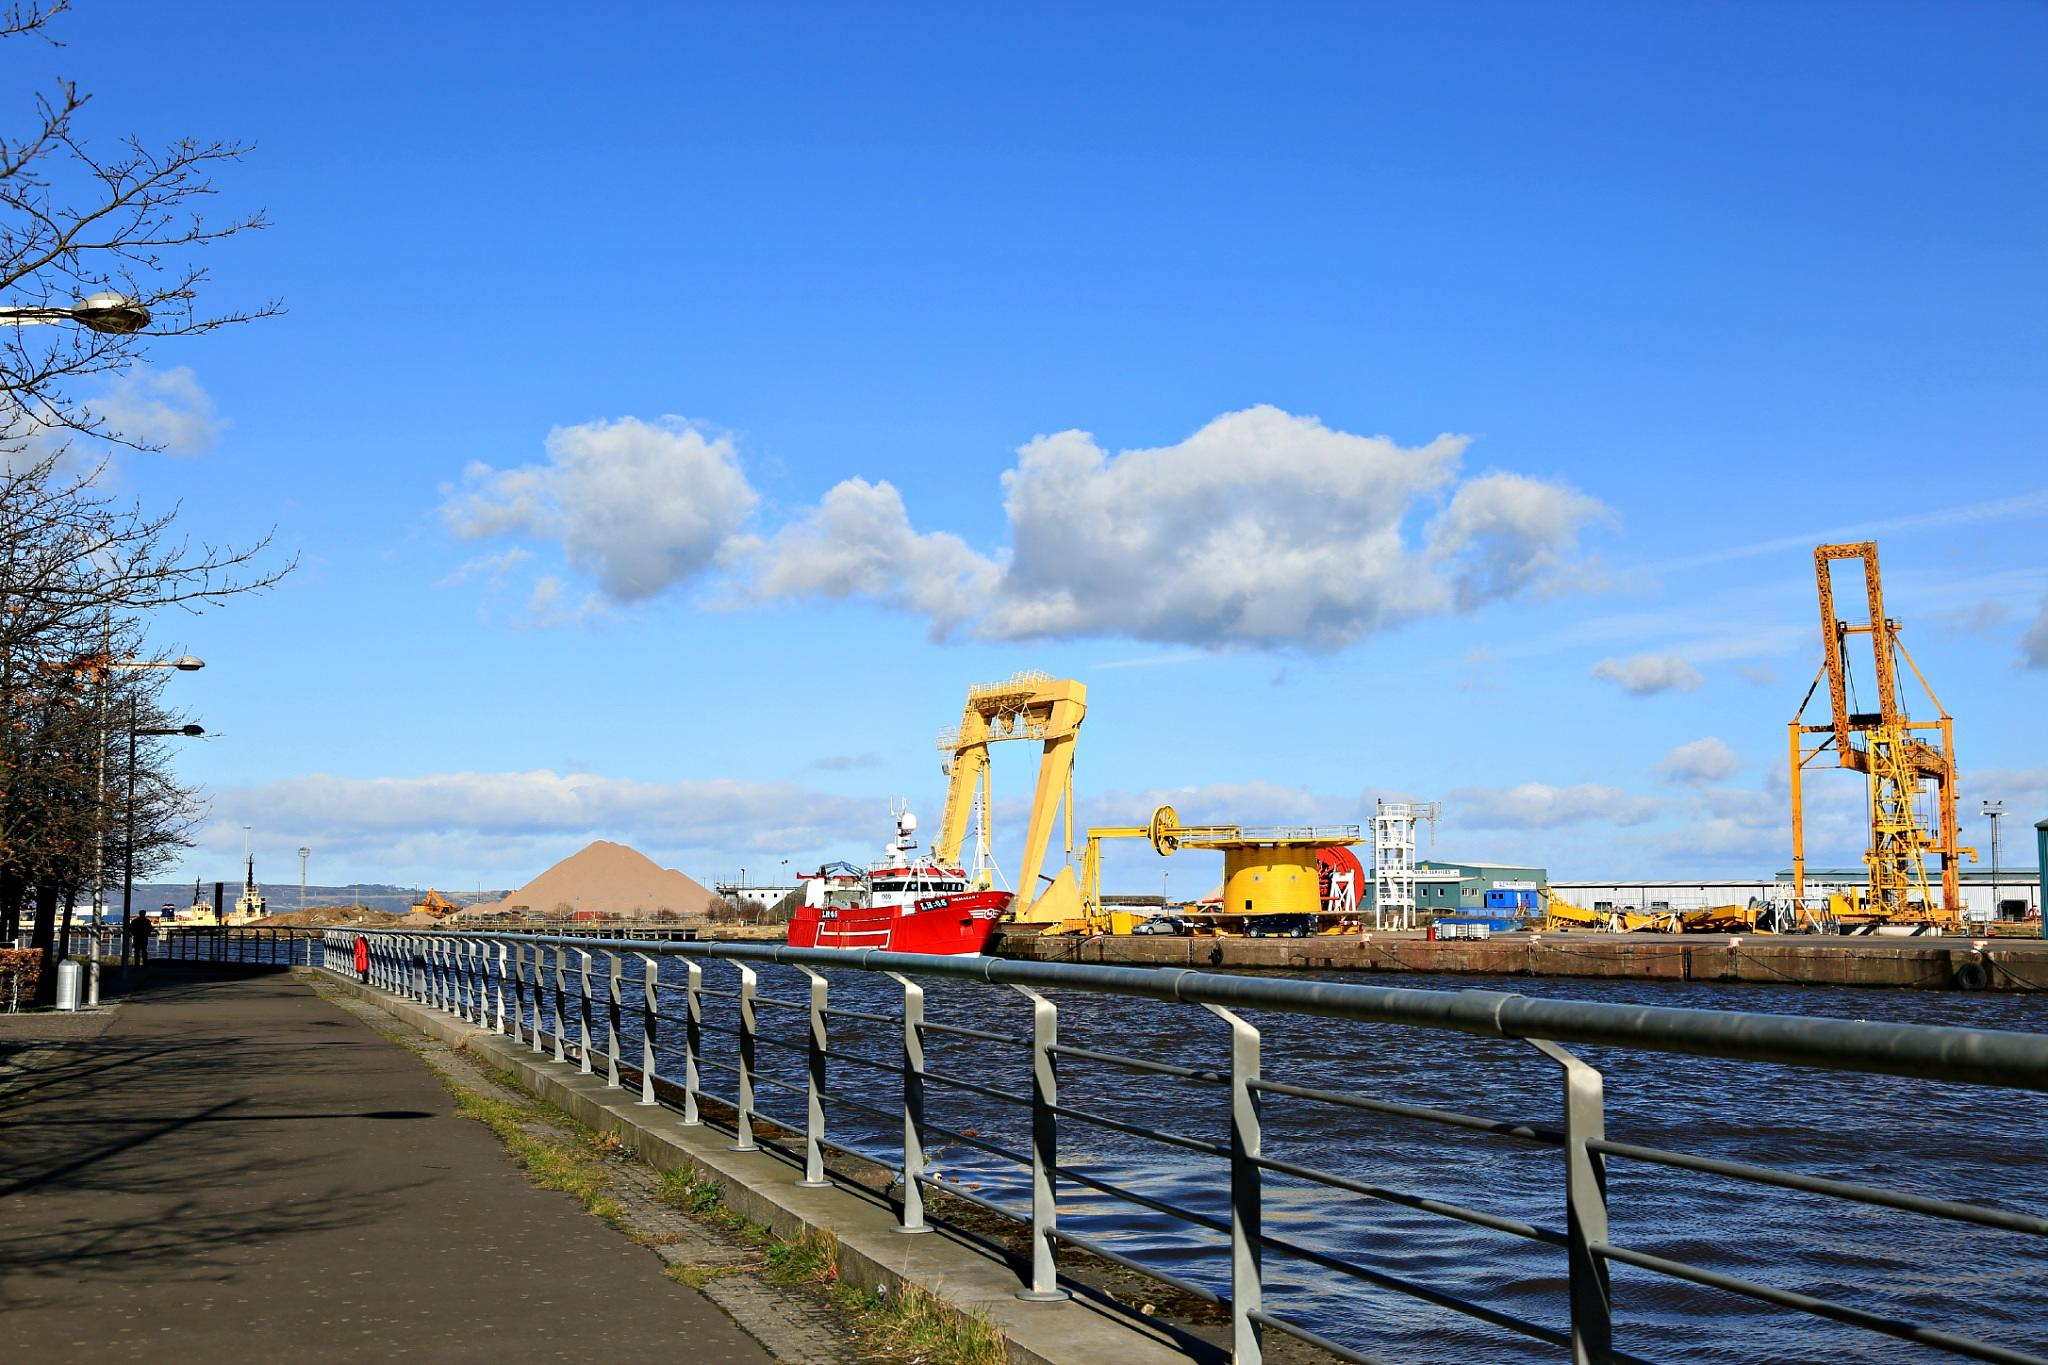 Colourful working port of Leith, Lothian by Cora